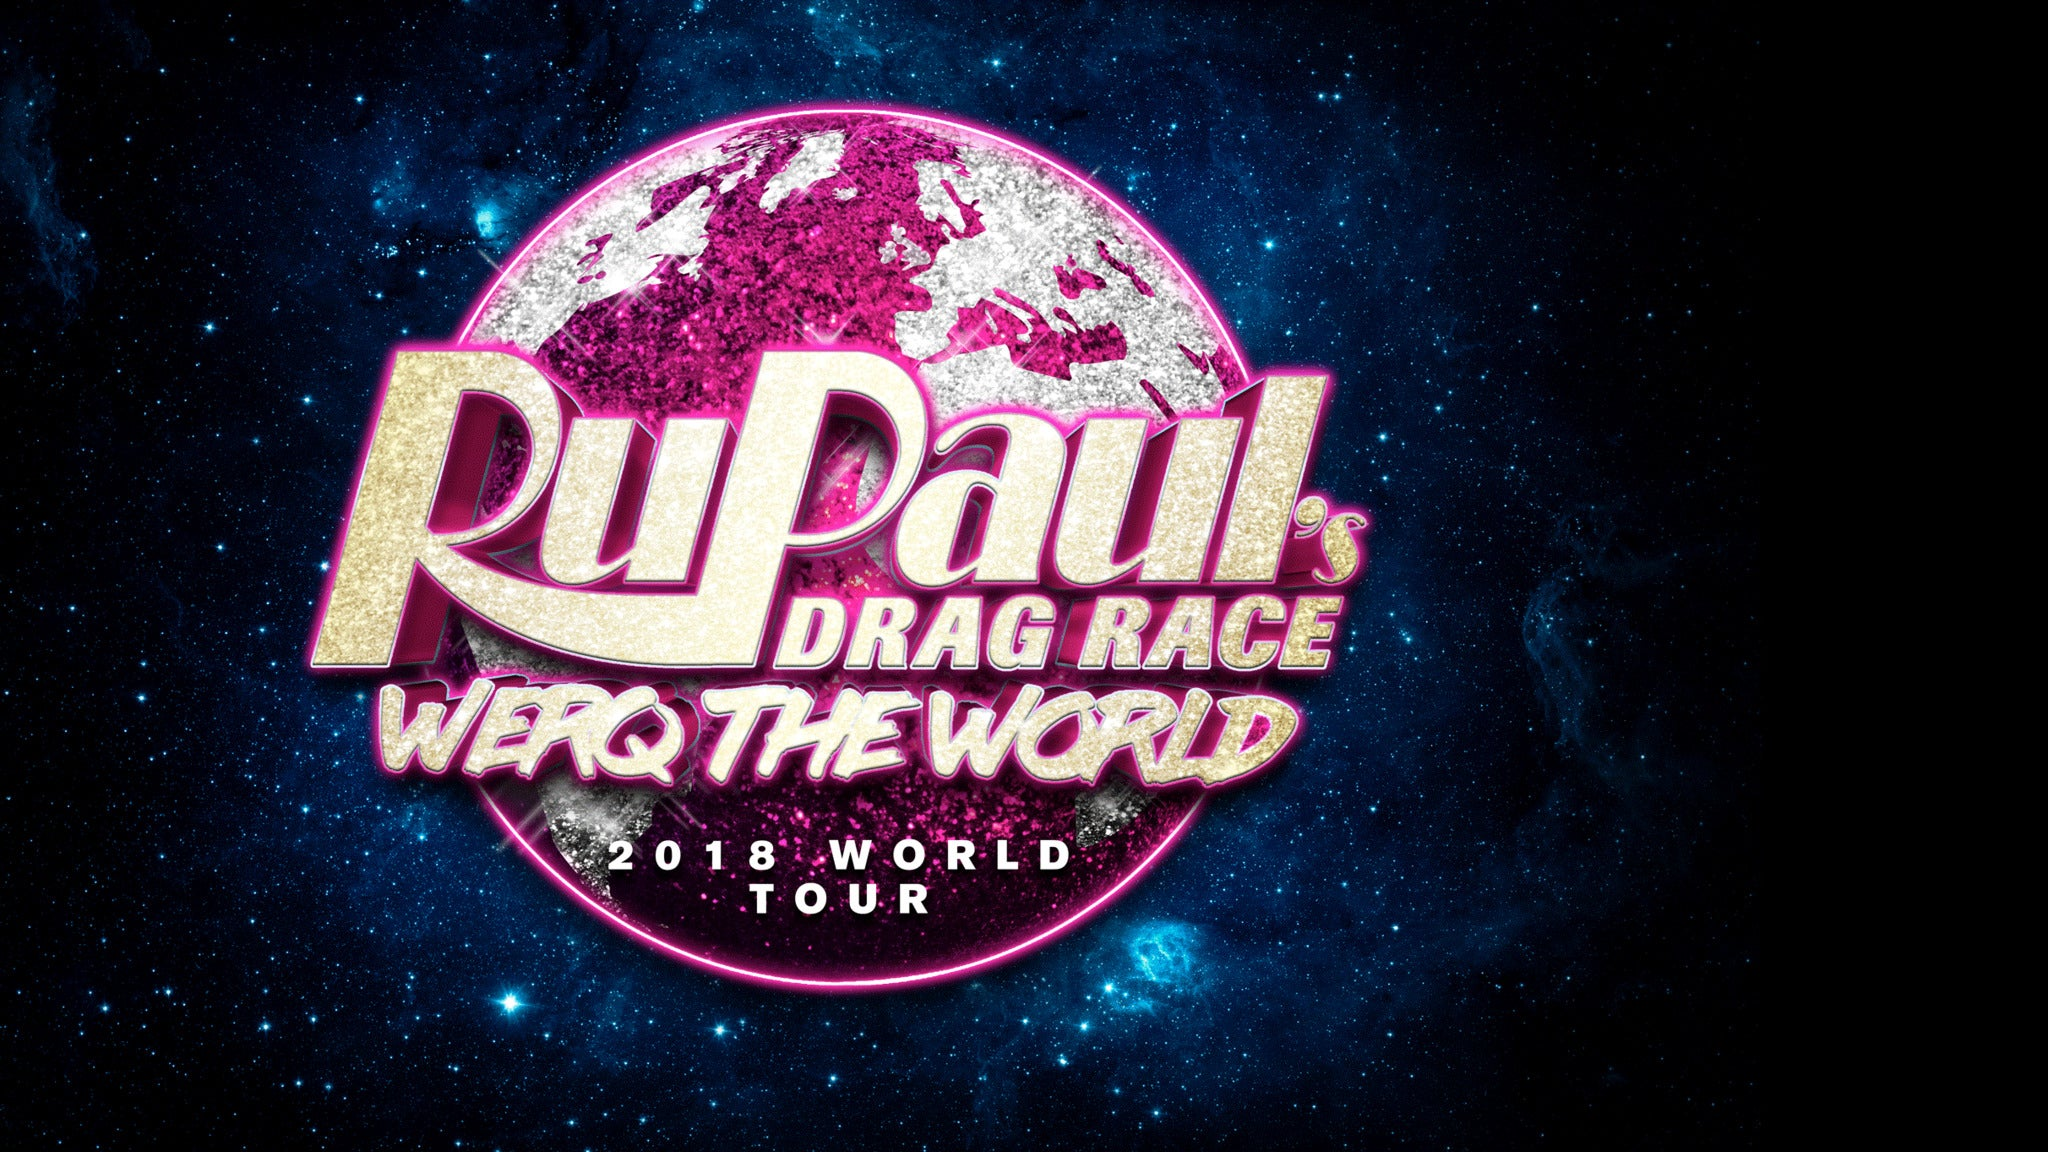 RuPaul's Drag Race at Plaza Live - Orlando